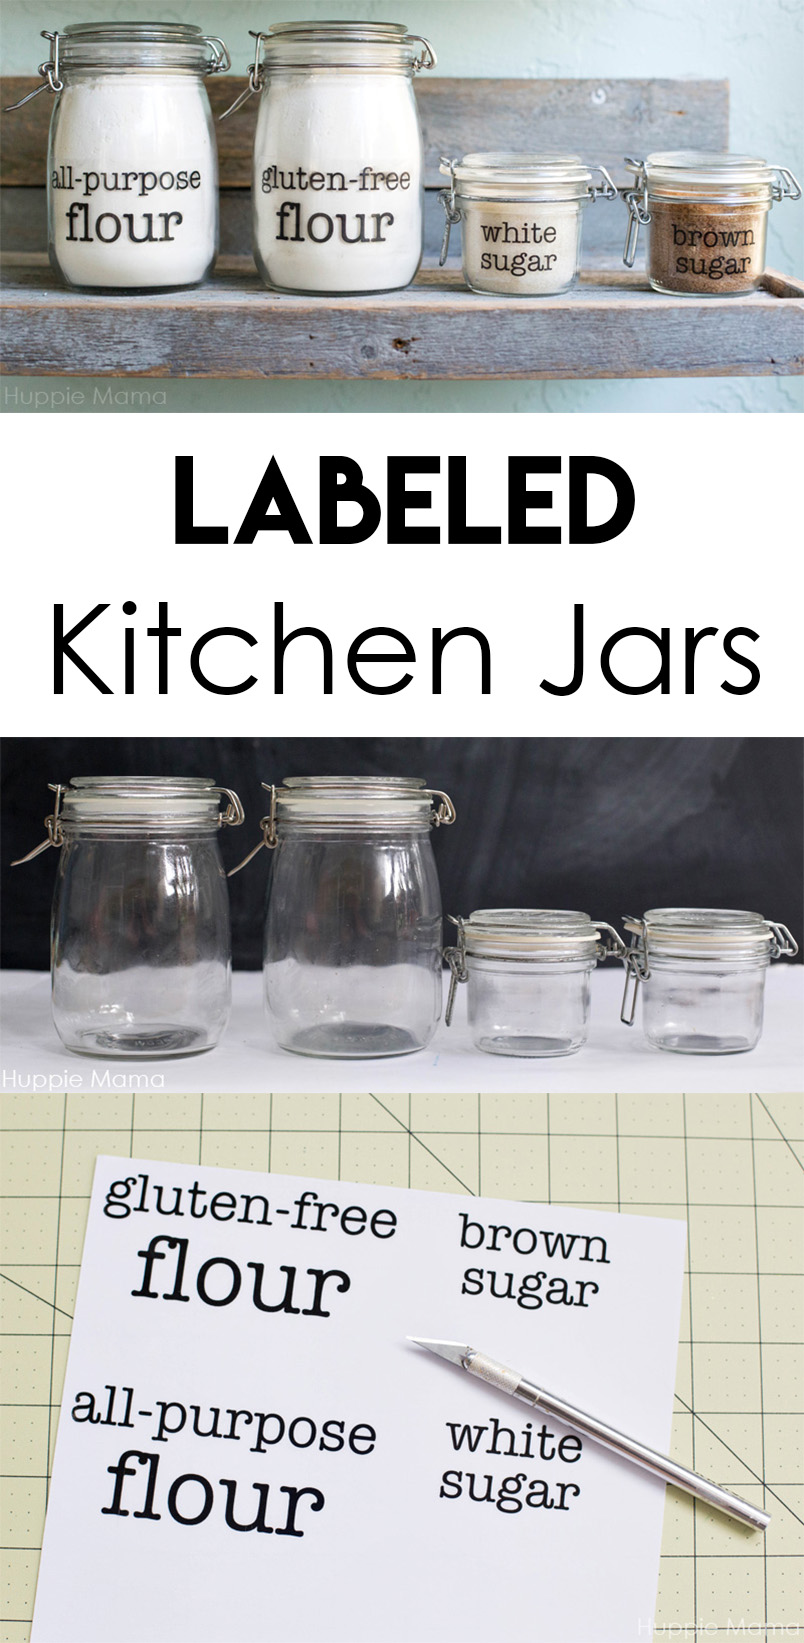 Labeled Kitchen Jars